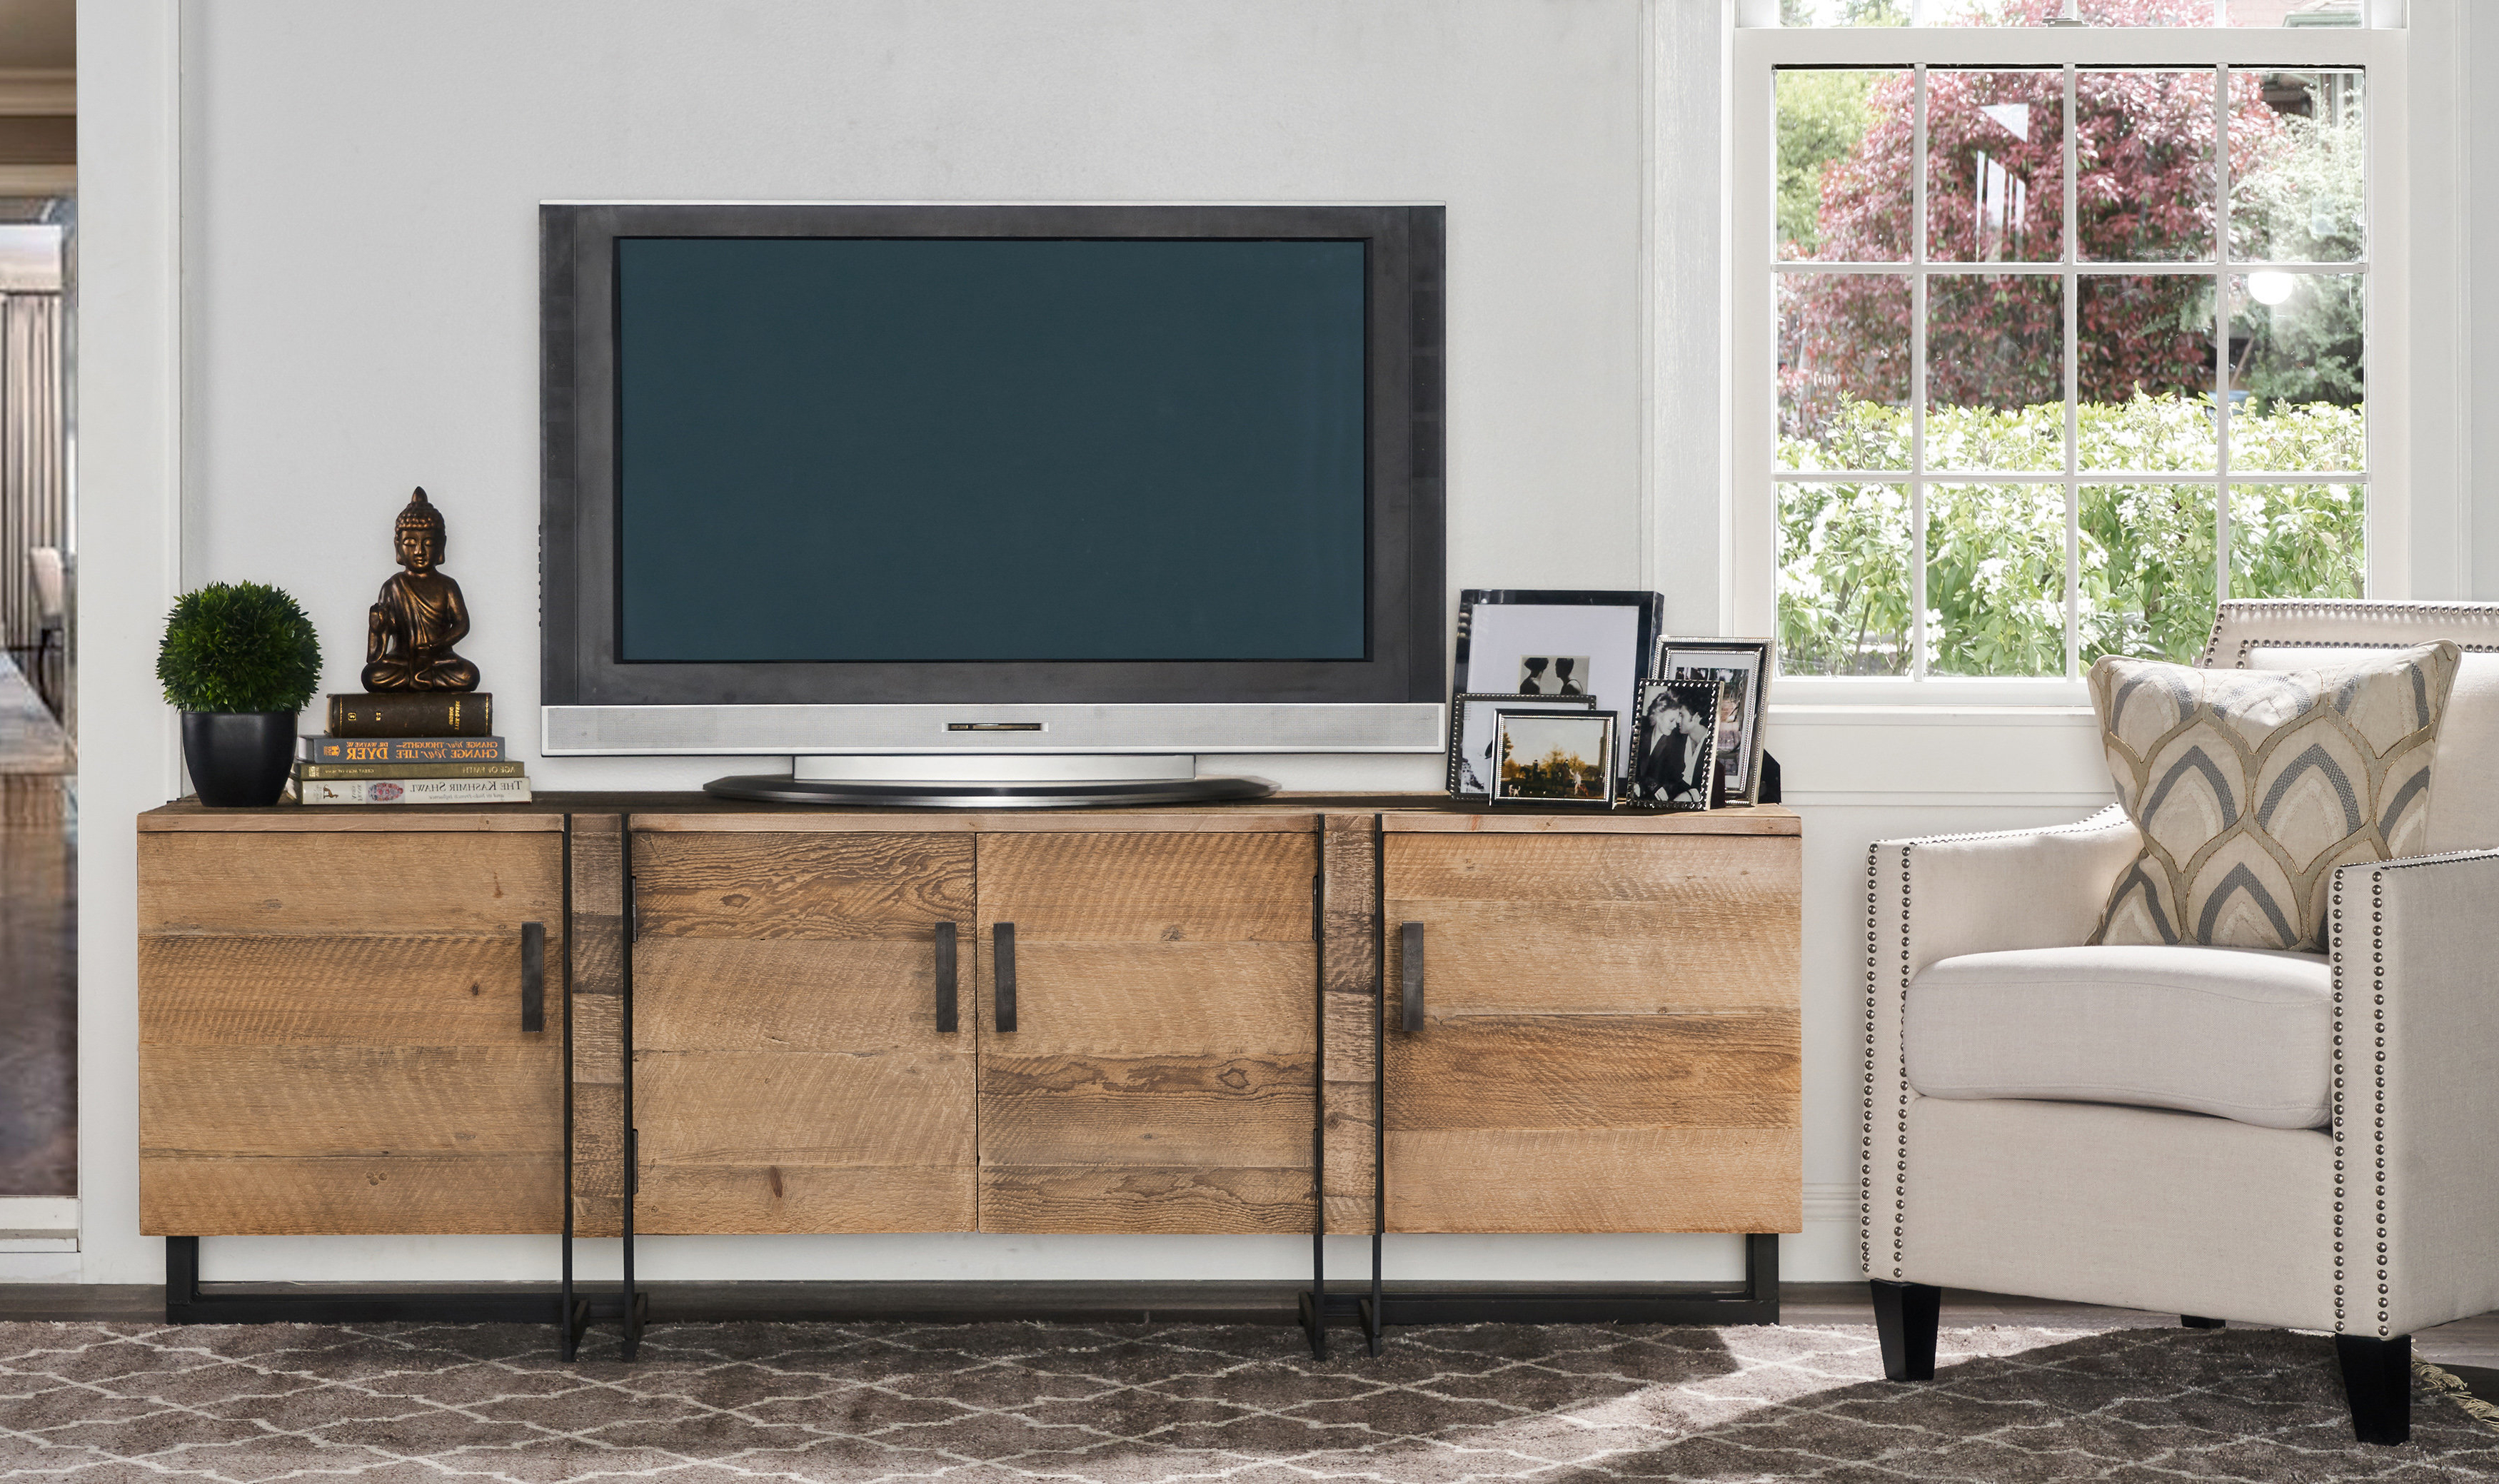 Wayfair For Well Known Walton 74 Inch Open Tv Stands (View 4 of 20)